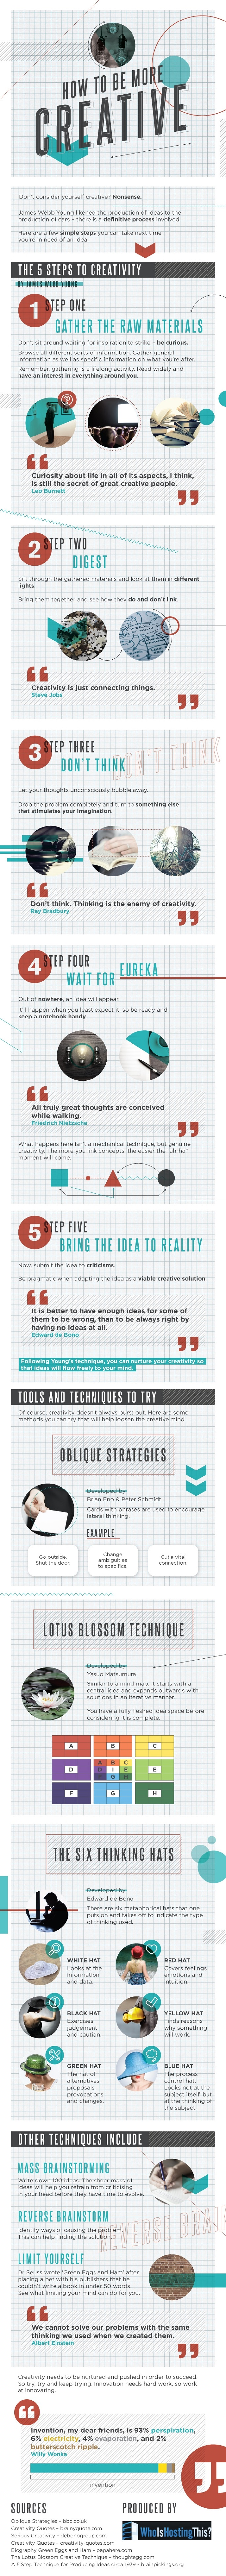 how-to-be-more-creative-infographic_52a5b02461dd4